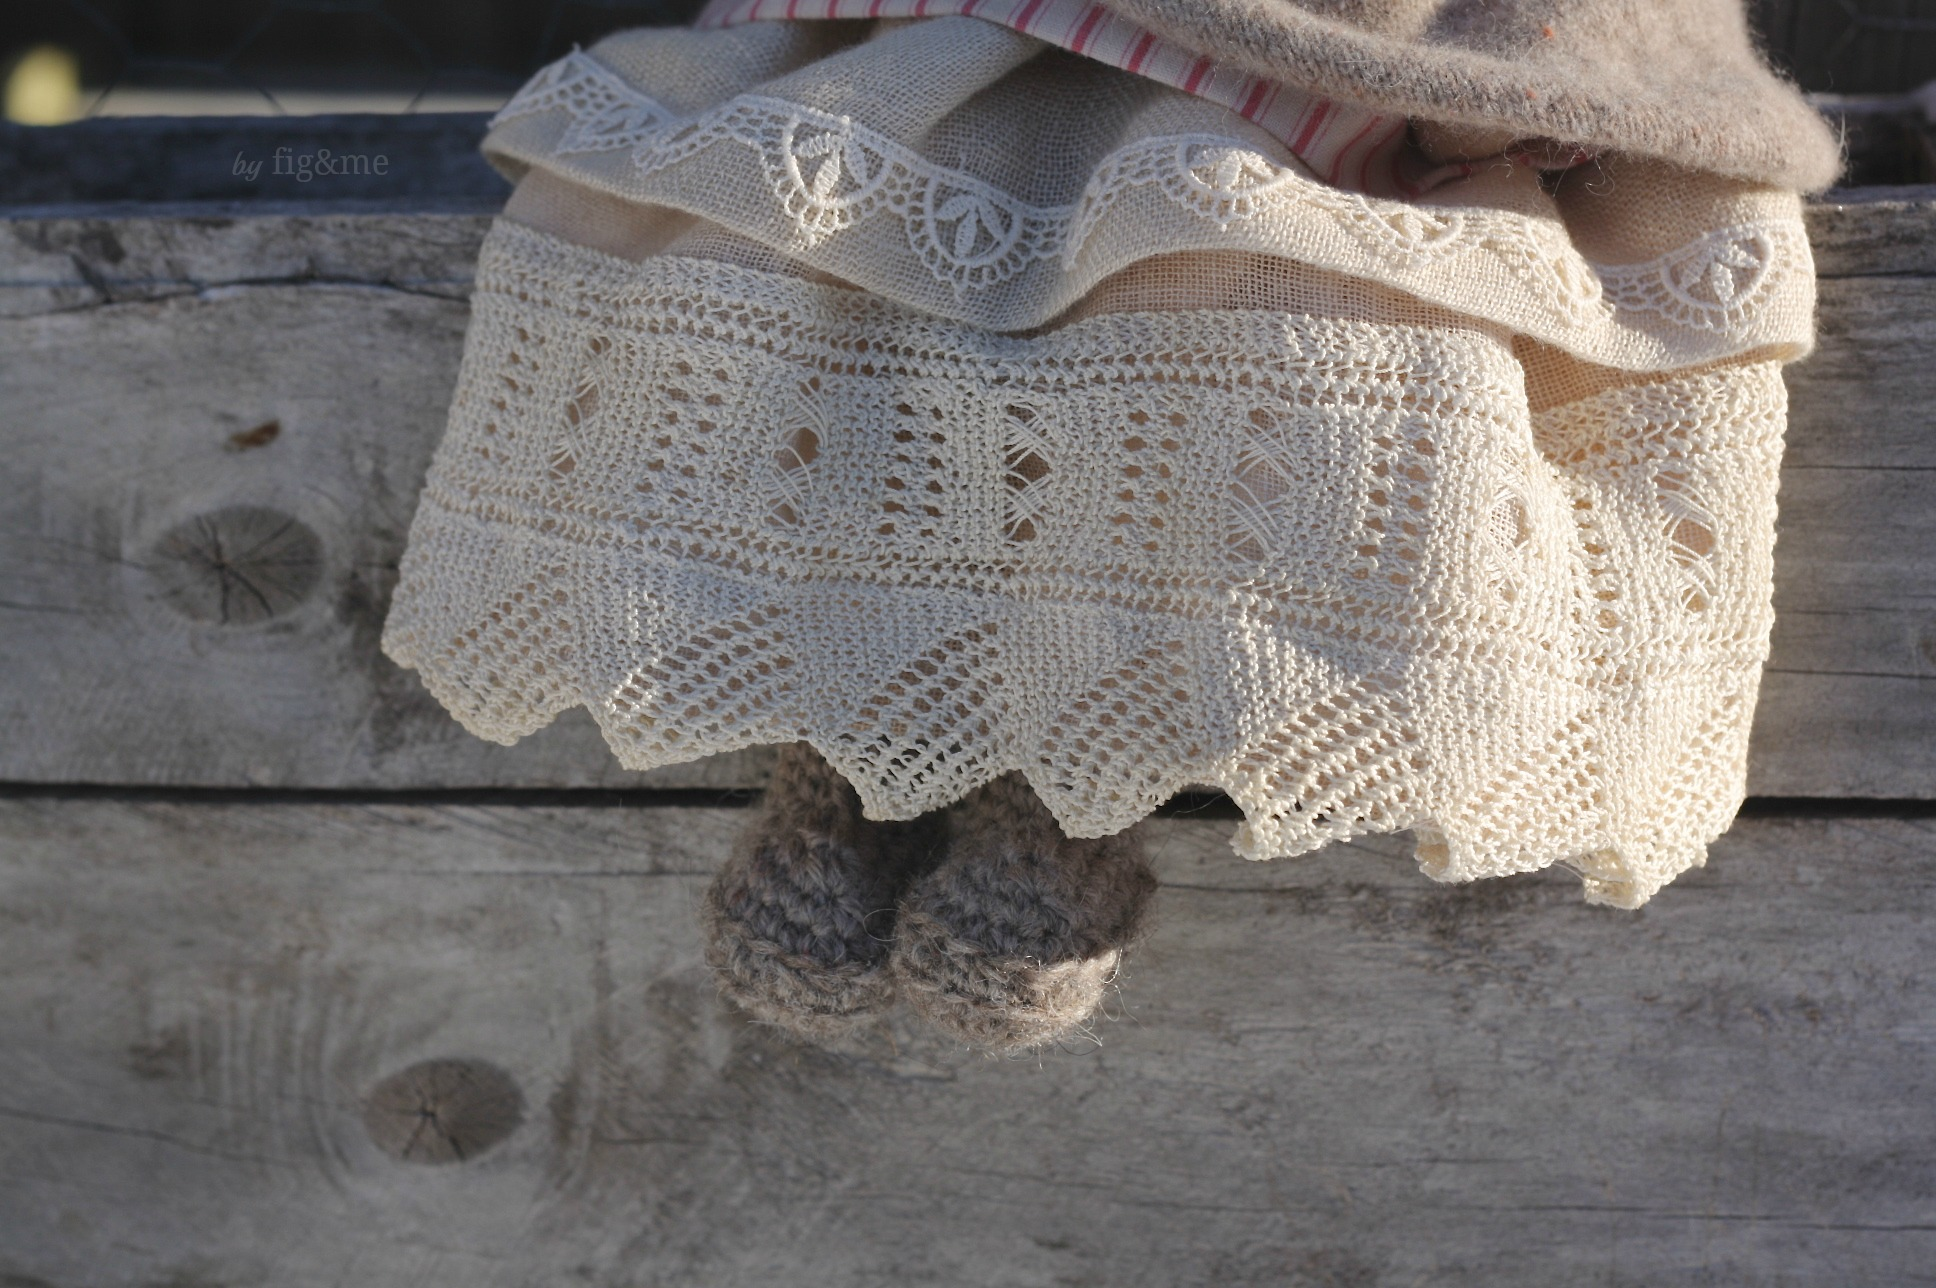 Melina in her little boots, a natural fiber art doll by Fig and me.